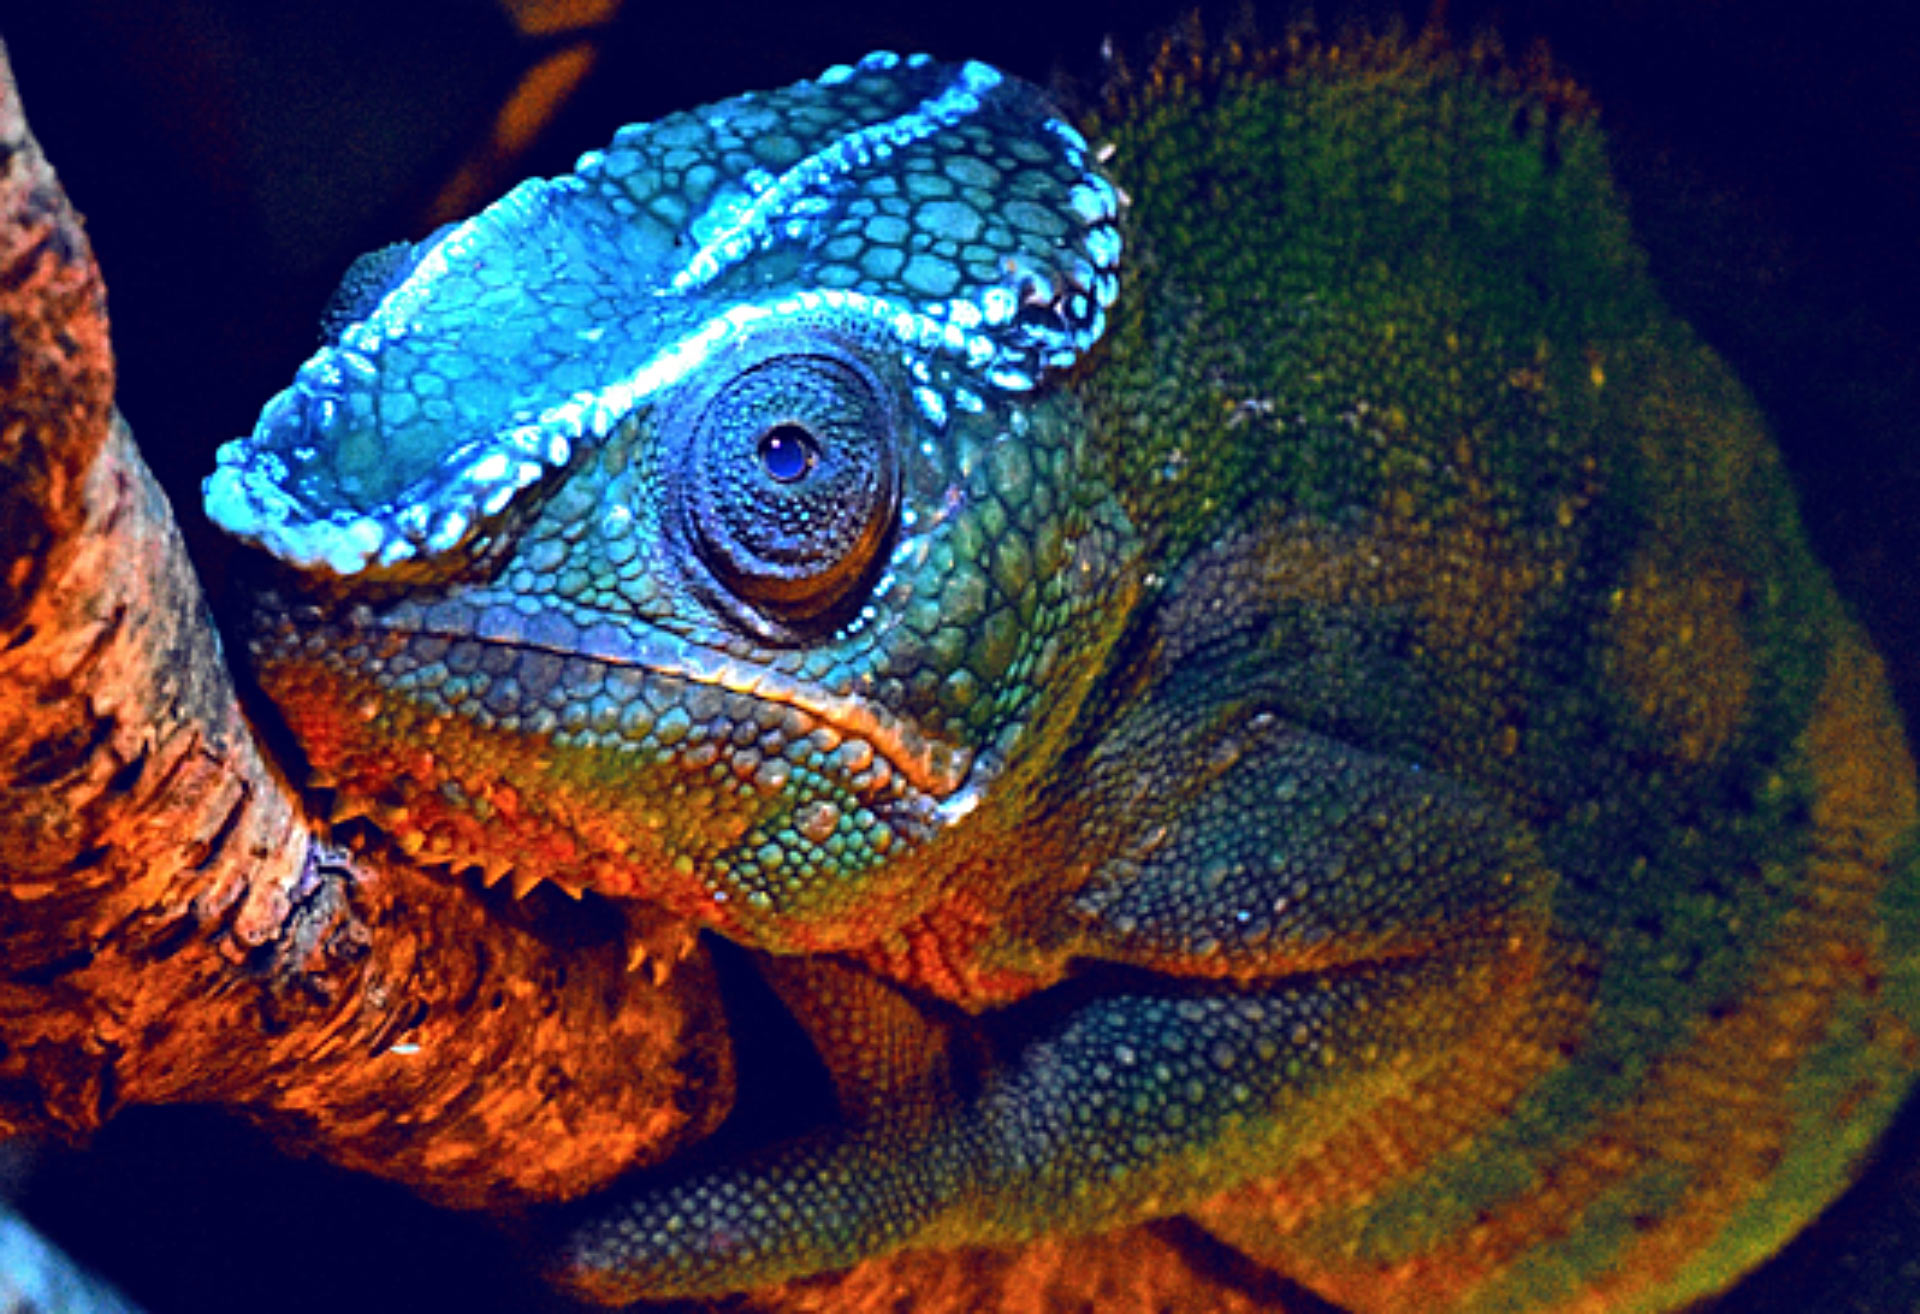 Chameleons have protrusions on their heads that glow bright blue under ultraviolet light, revealing incredible patterns.